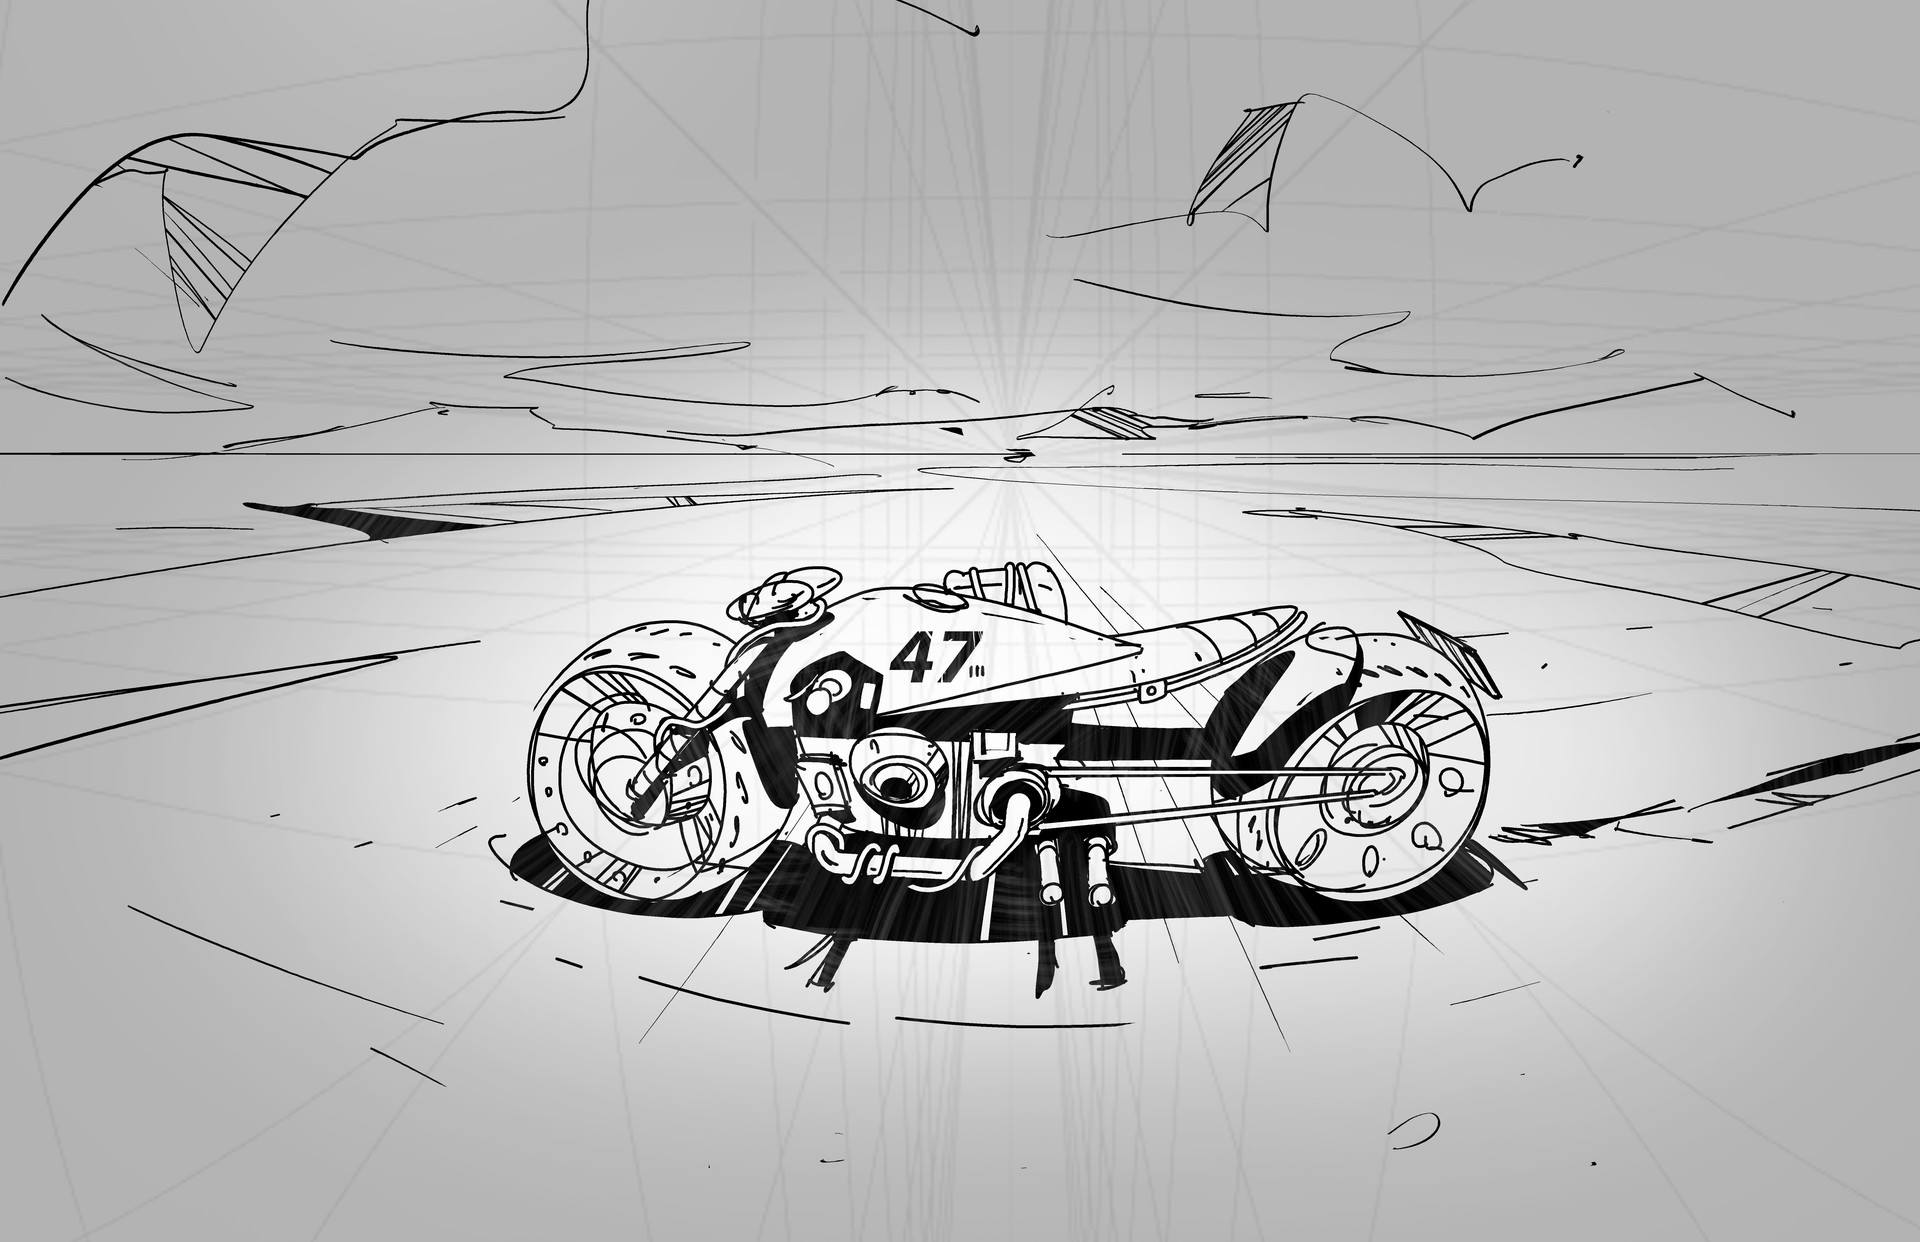 Matt tkocz bikesketch